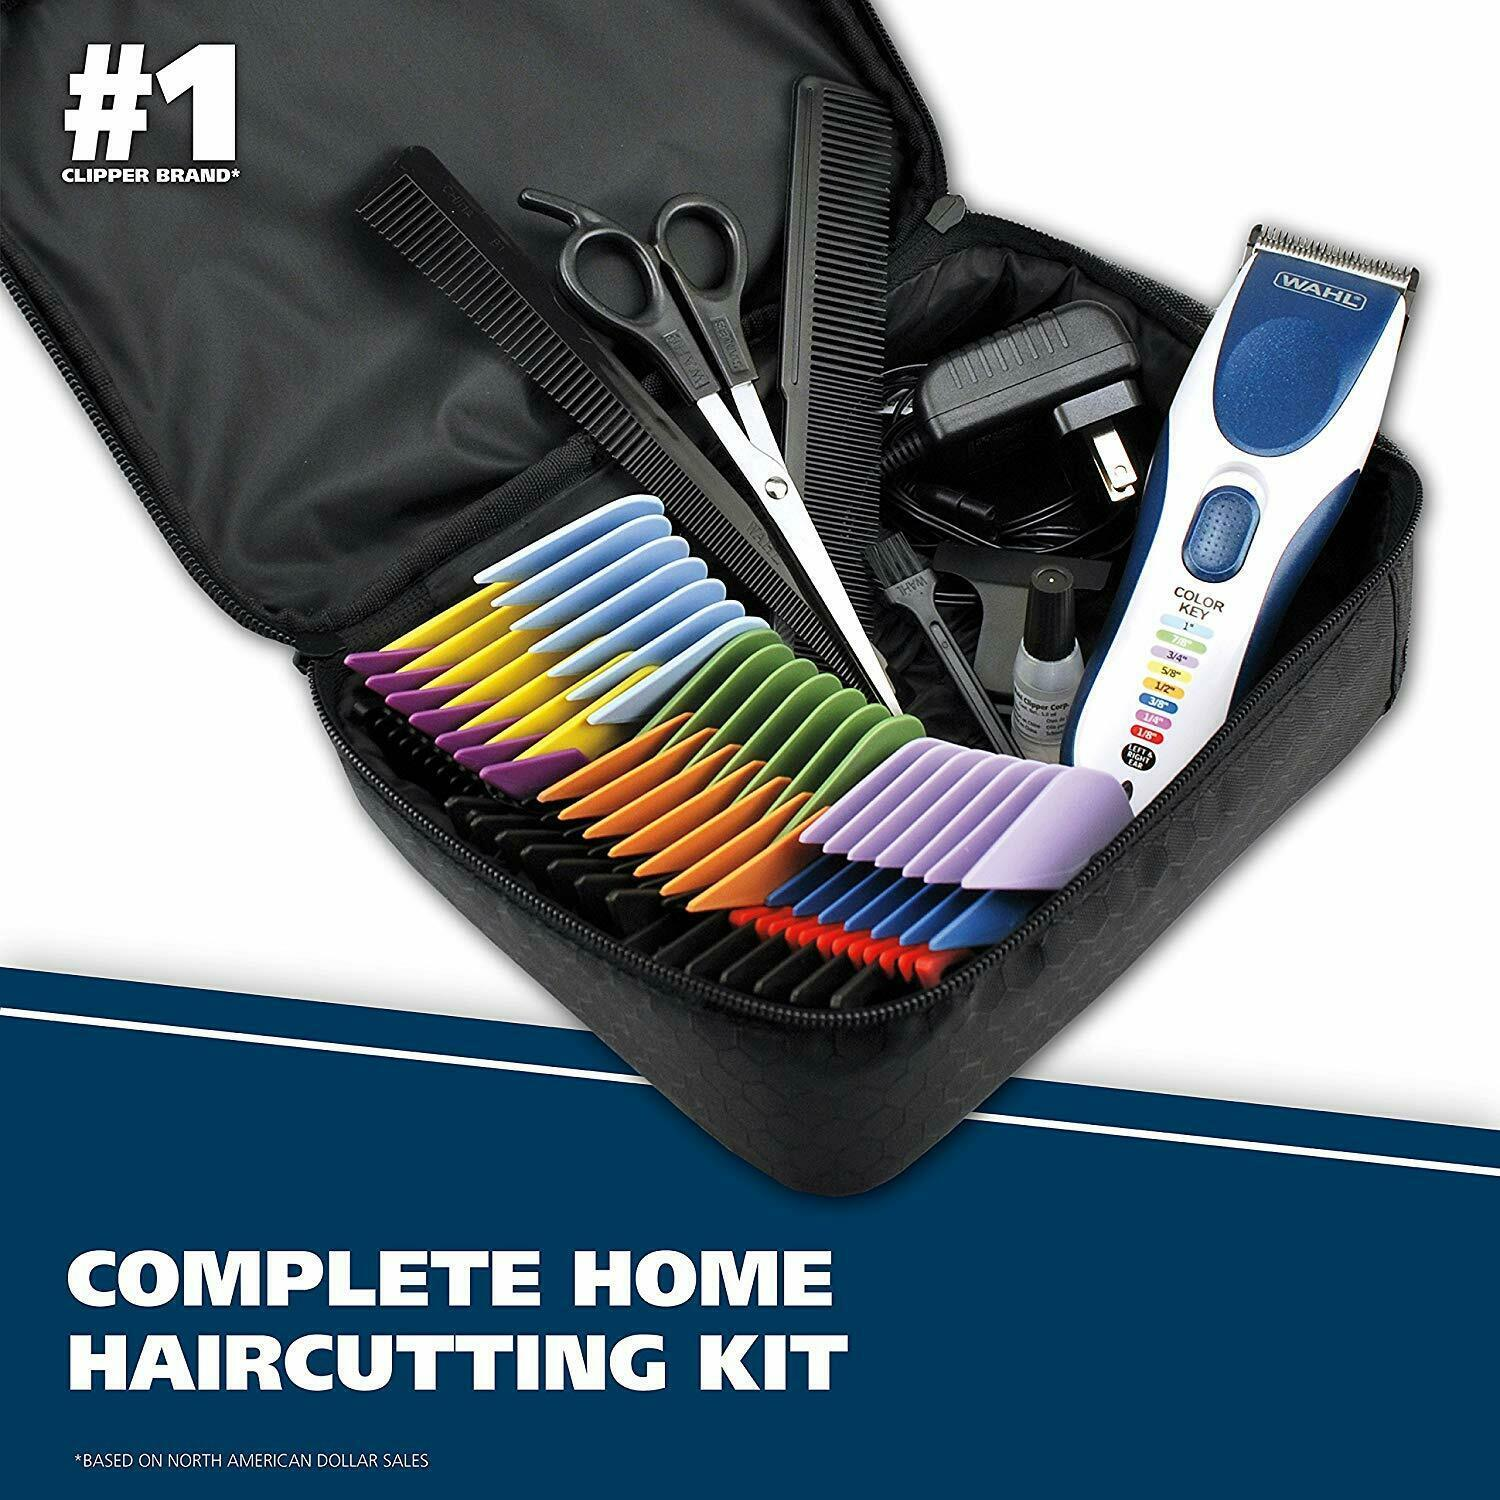 Wahl Color Pro Cordless Rechargeable Hair Clippers, Hair trimmers, 21 pieces